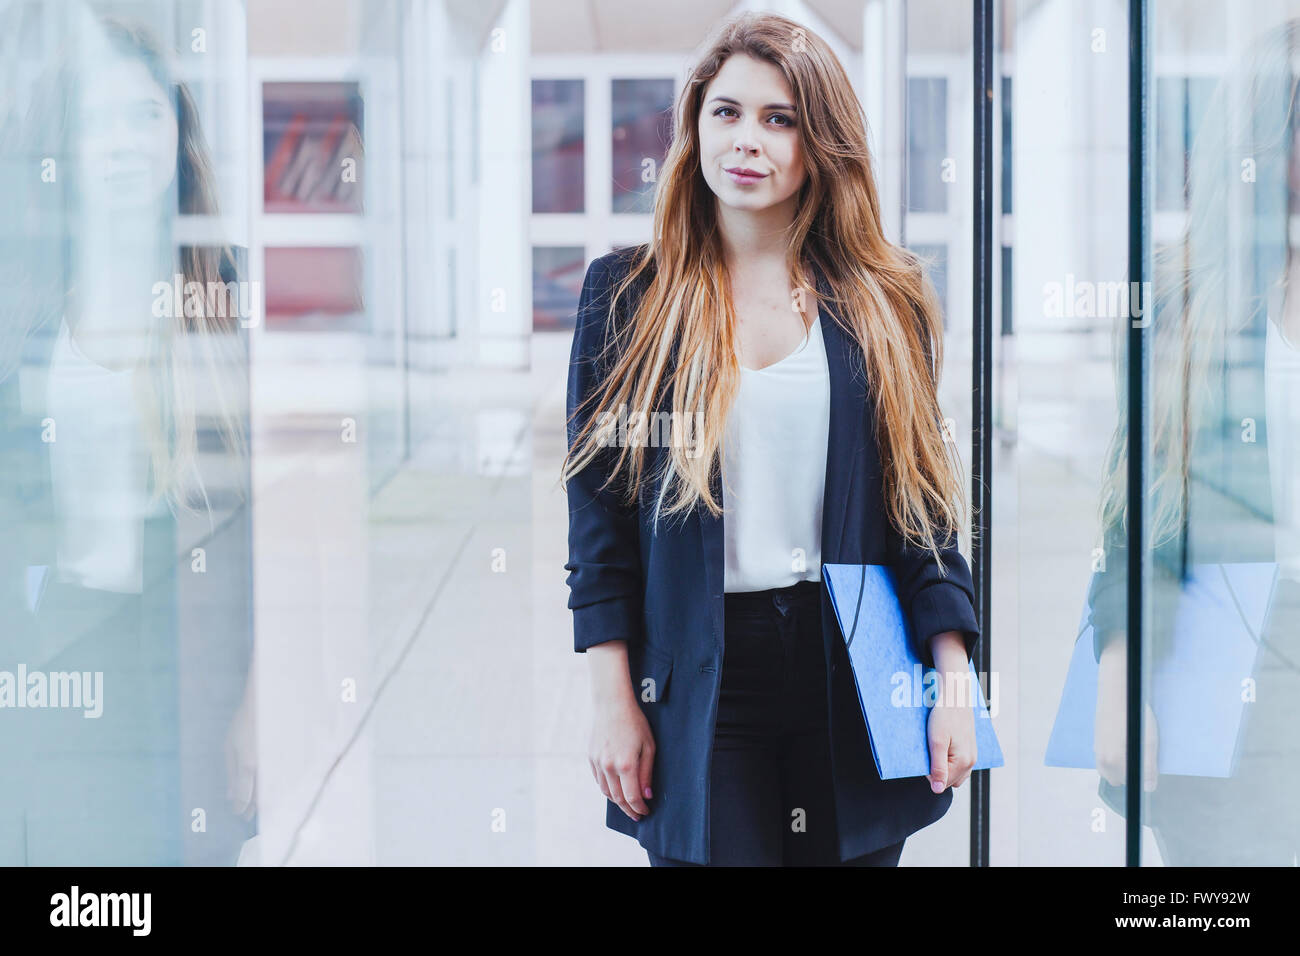 portrait of business woman looking at the camera - Stock Image